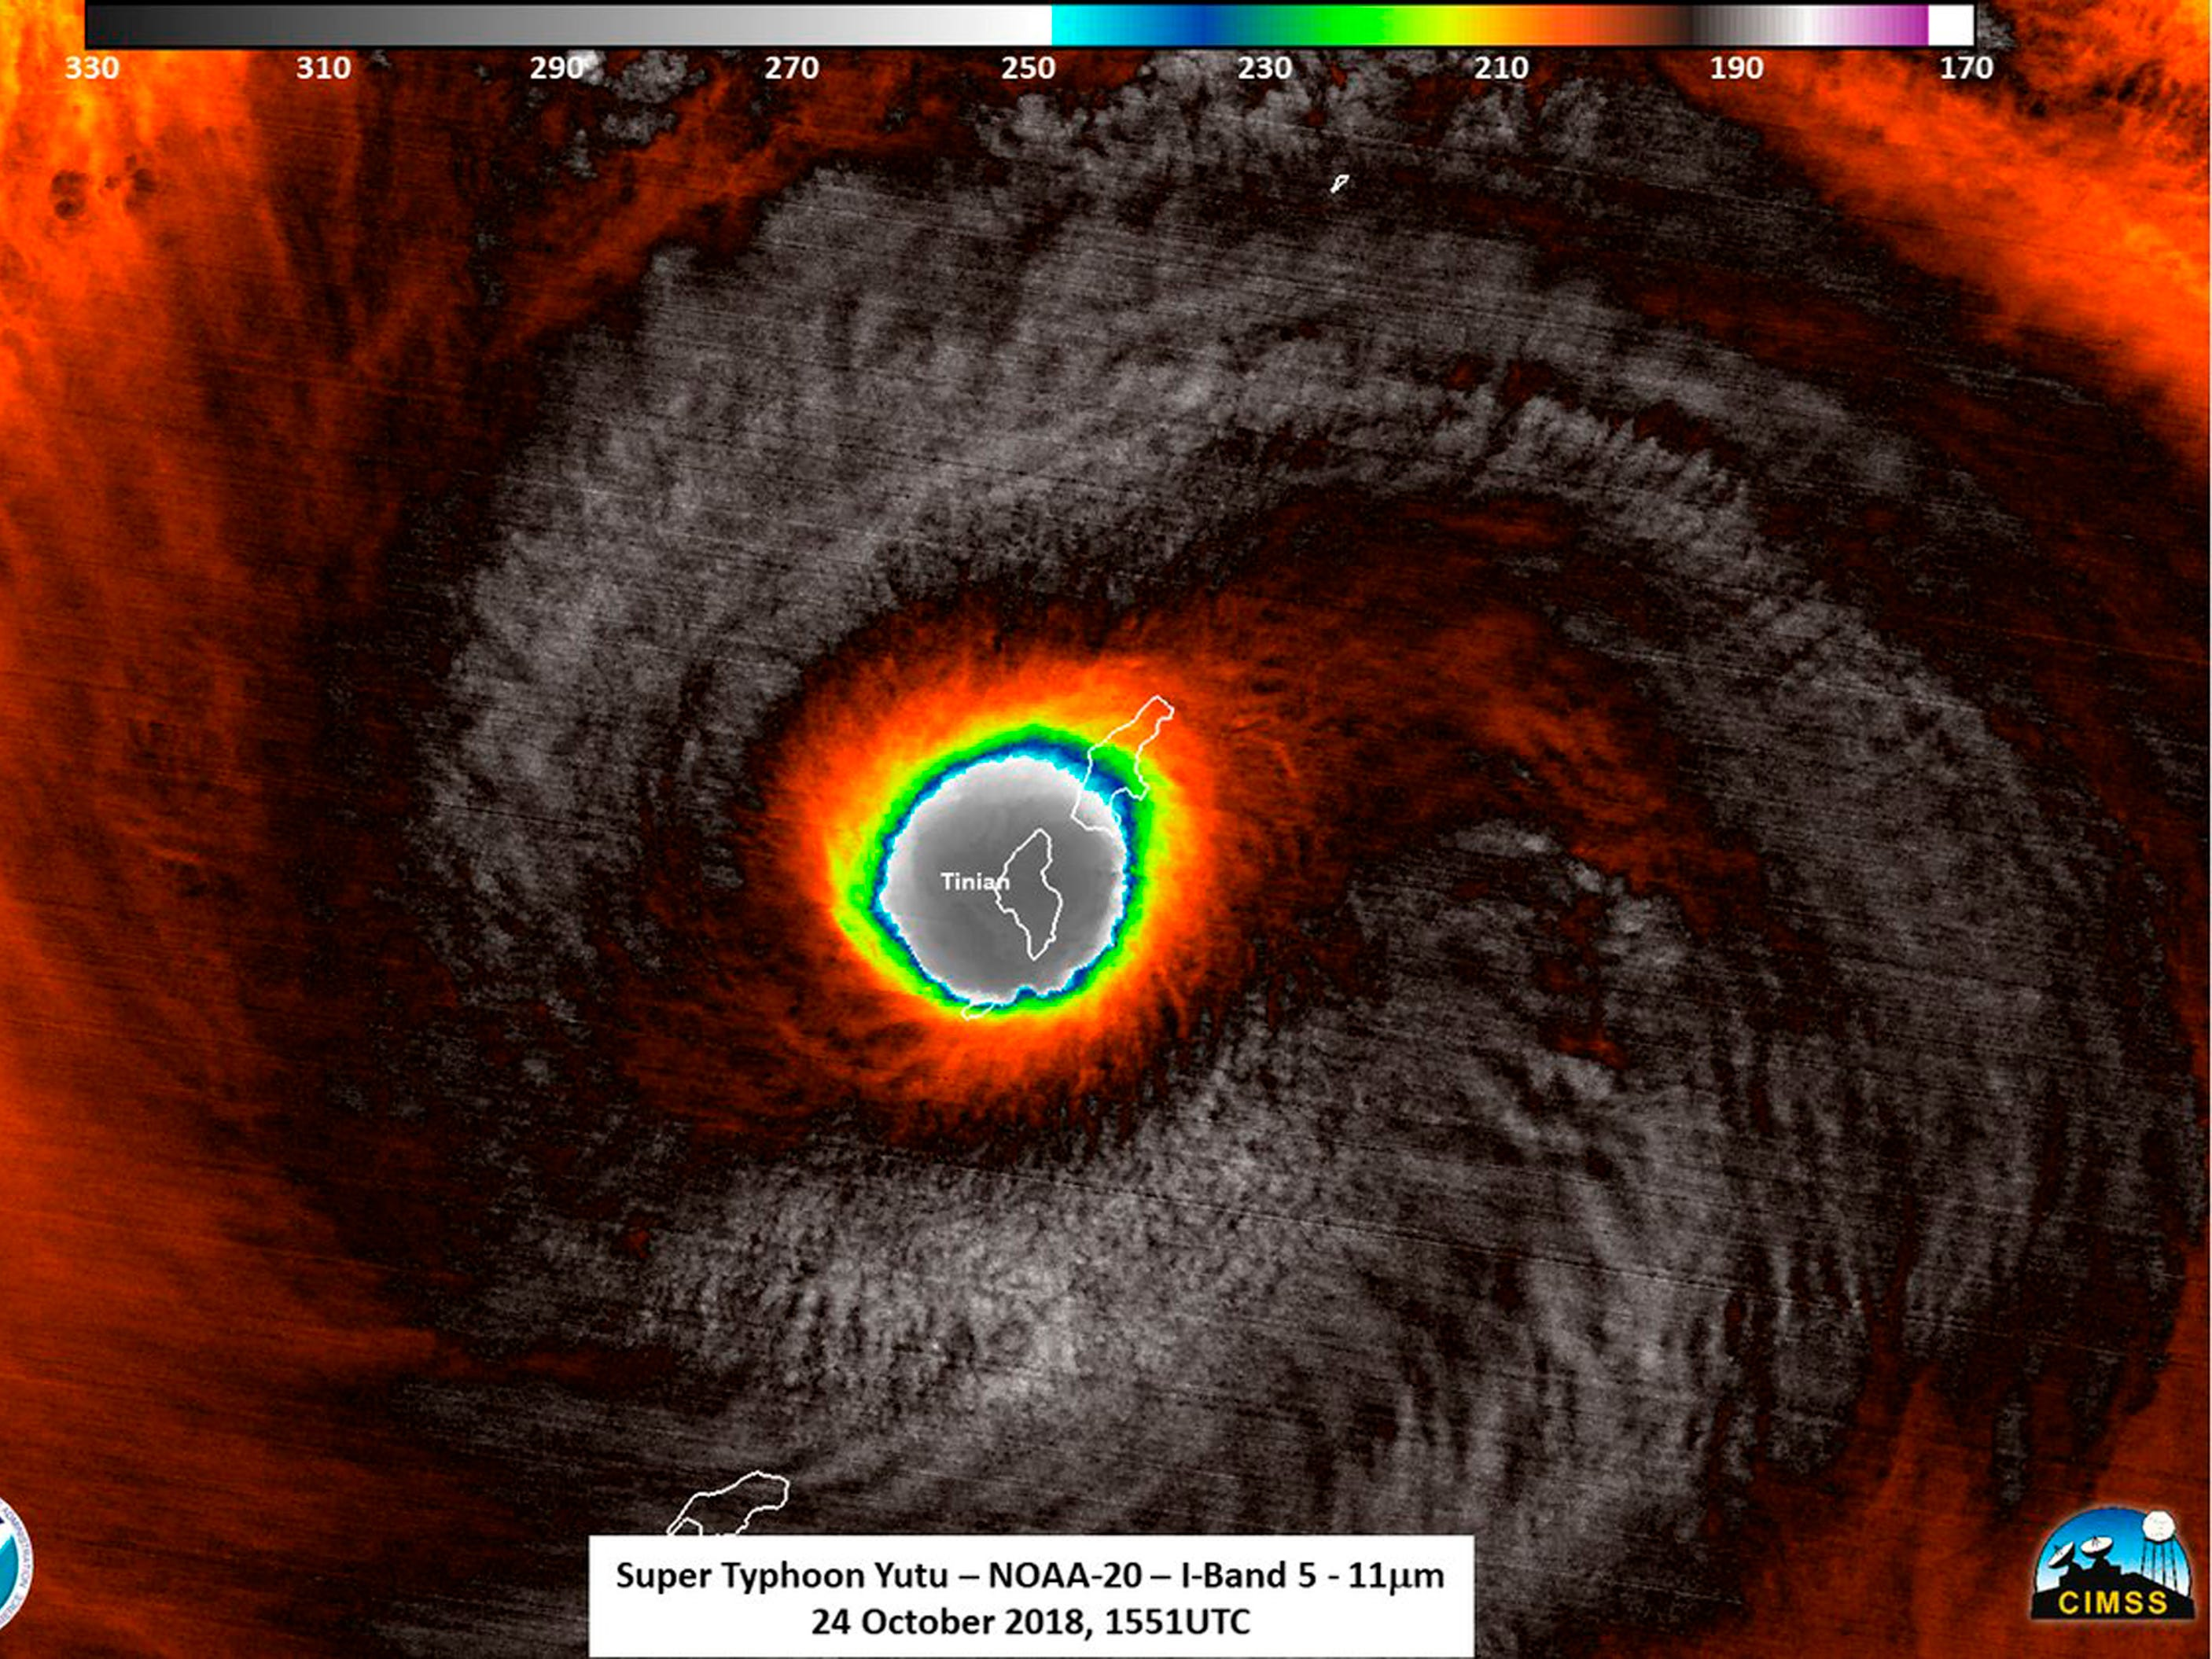 This false-color satellite image provided by the National Oceanic and Atmospheric Administration (NOAA) shows the moment the eye of Super Typhoon Yutu passed over Tinian, one of three main islands in the U.S. Commonwealth of the Northern Mariana Islands, producing damaging winds and high surf Wednesday, Oct. 24, 2018. The National Weather Service in Honolulu says maximum sustained winds of 180 mph (290 kph) were recorded around the eye of the storm, which passed over Tinian island and Saipan early Thursday morning local time. Waves of 25 to 40 feet (6 to 12 meters) are expected around the eye of the storm.